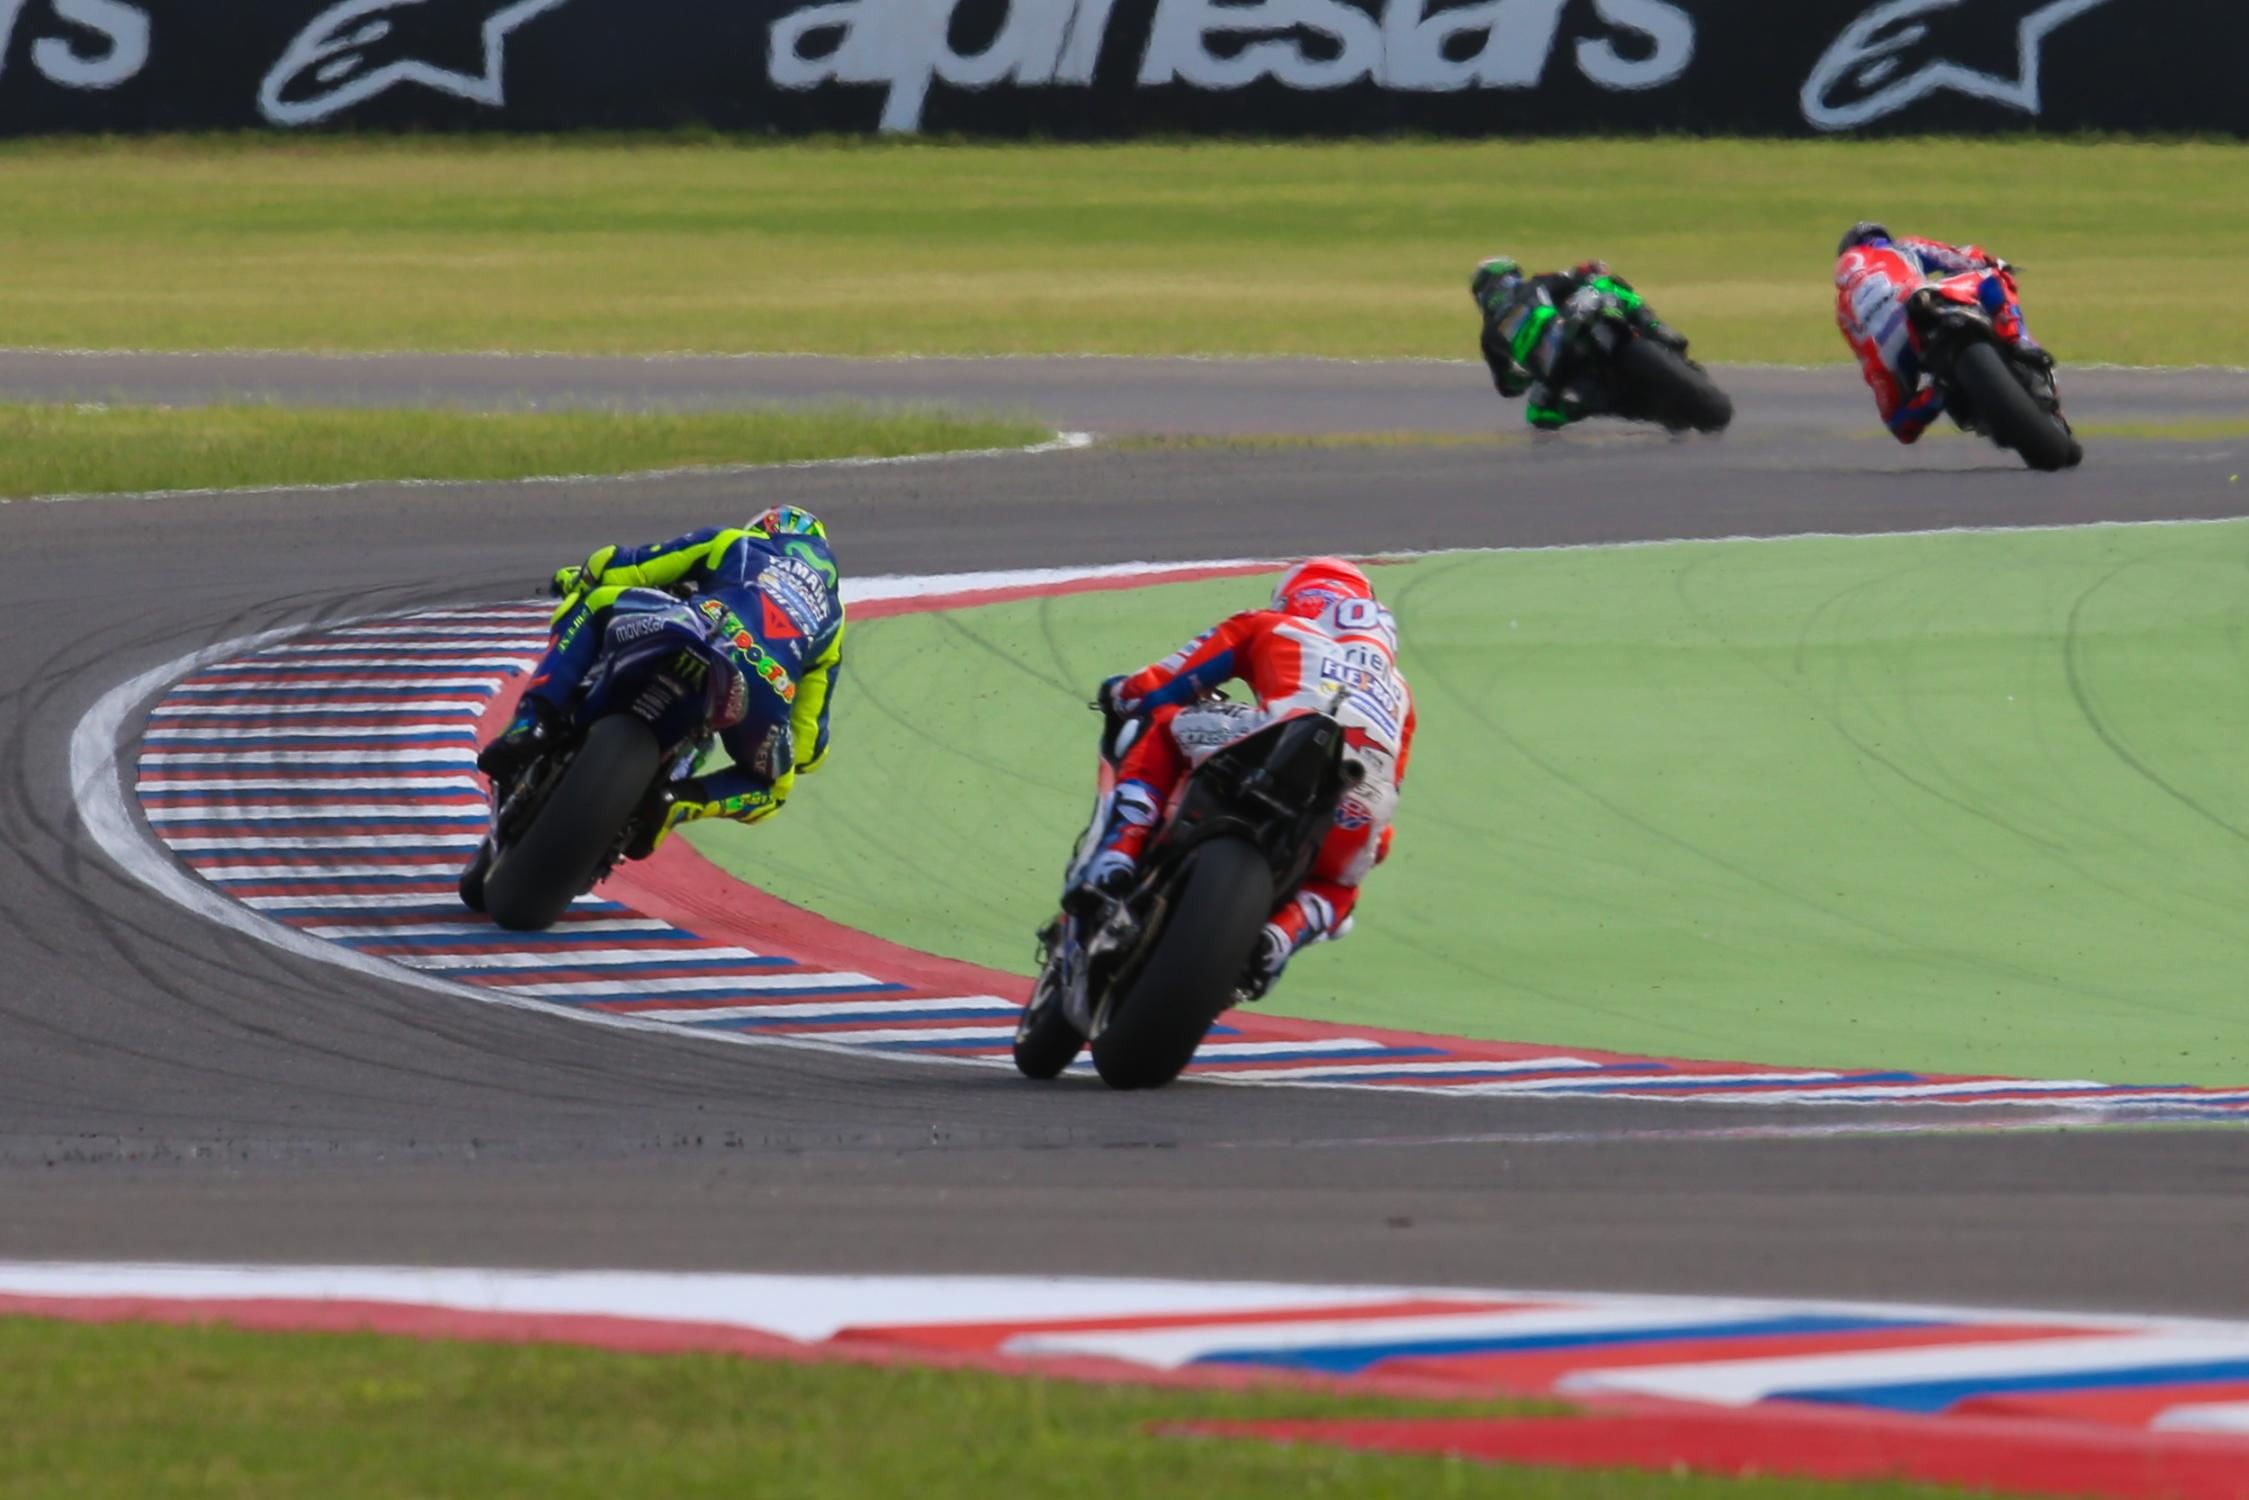 [MotoGP] Argentine Bl1_8501_0.gallery_full_top_fullscreen